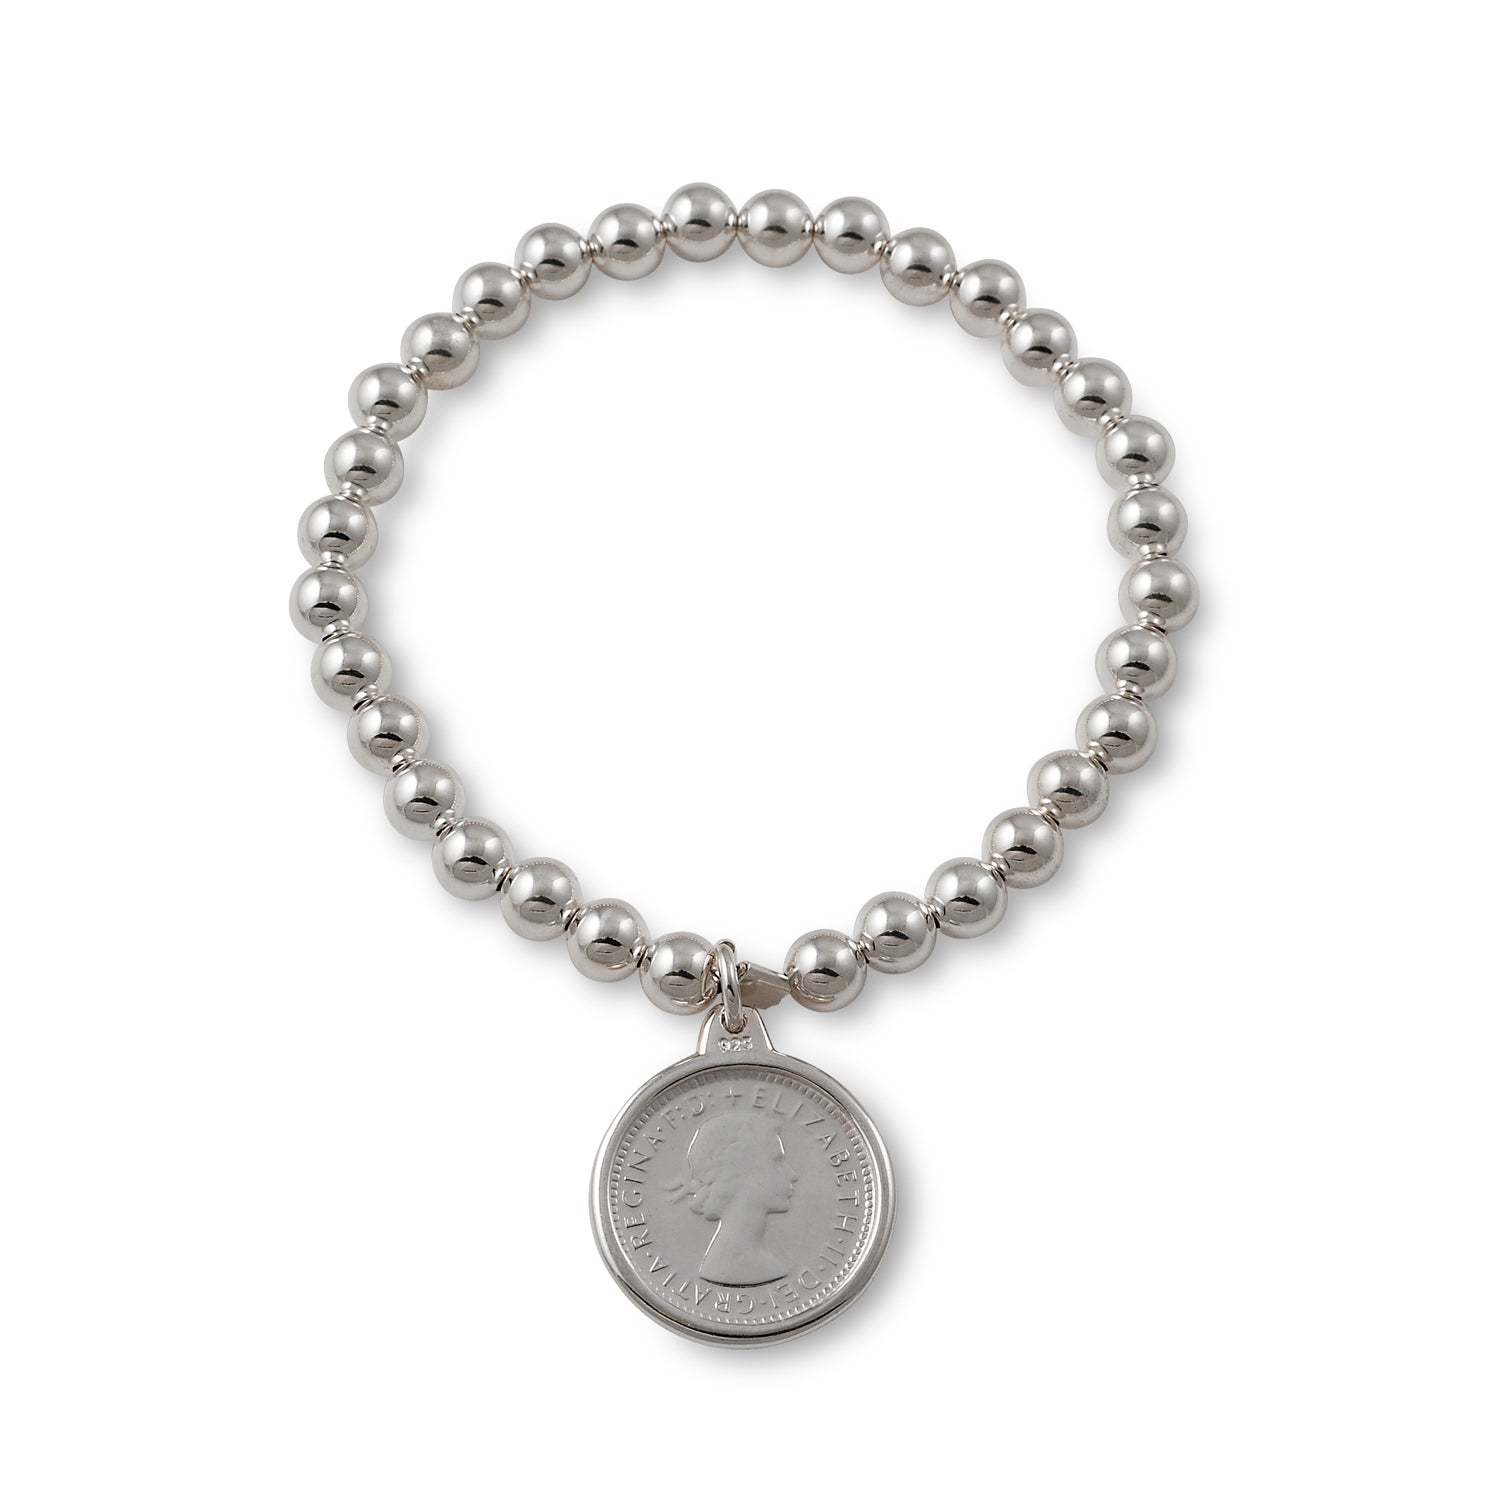 Von Treskow Sterling silver 6mm stretchy bracelet with authentic Australian sixpence coin